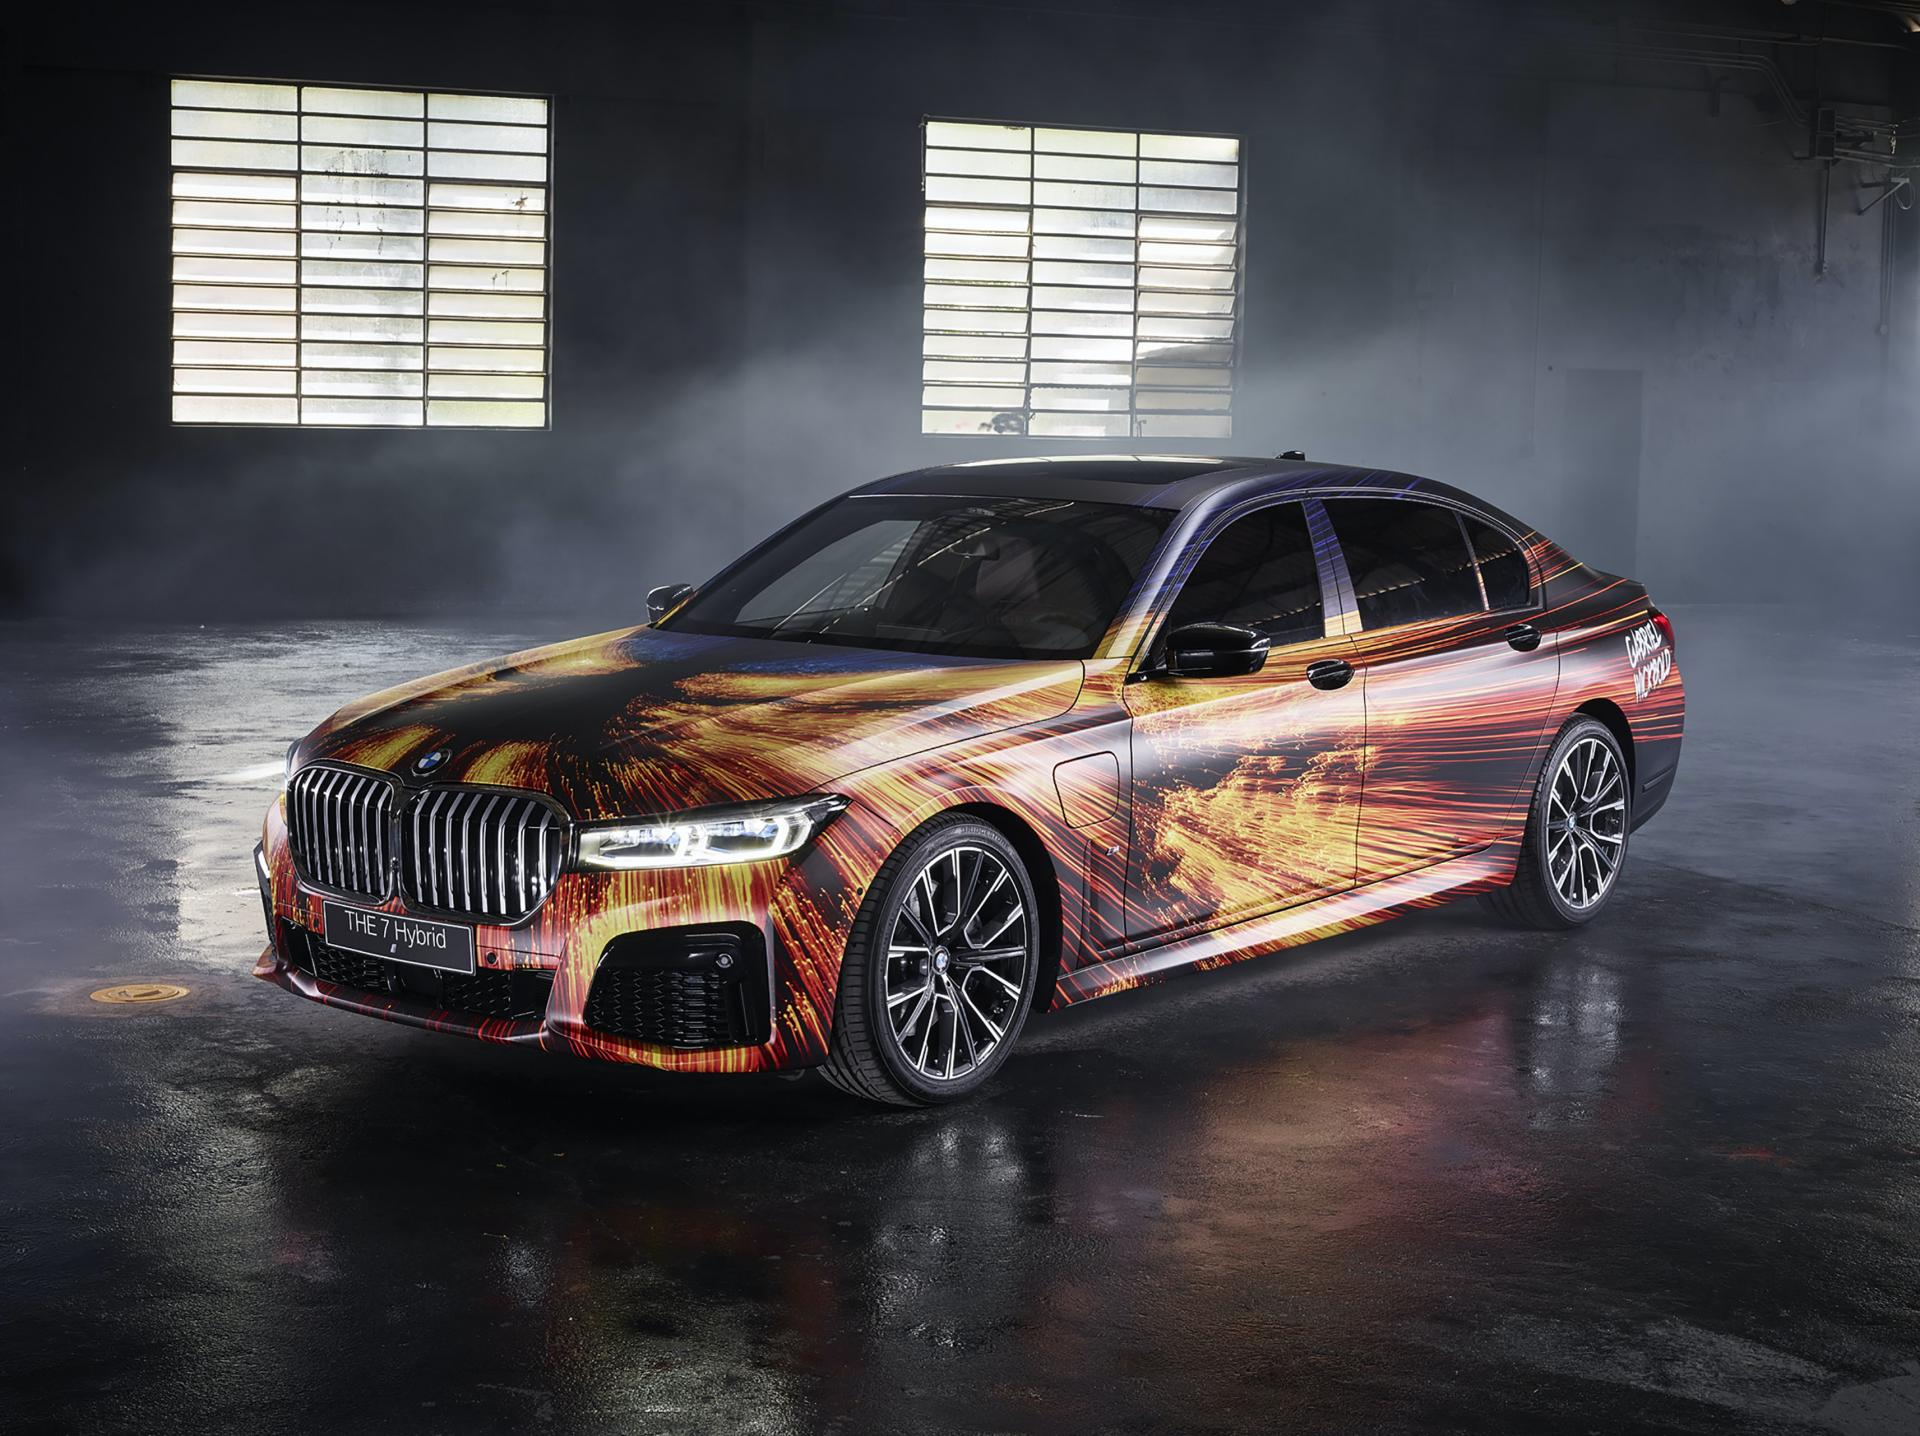 BMW-7-Series-745Le-M-Sport-Gabriel-Wickbold-Car-Art-12